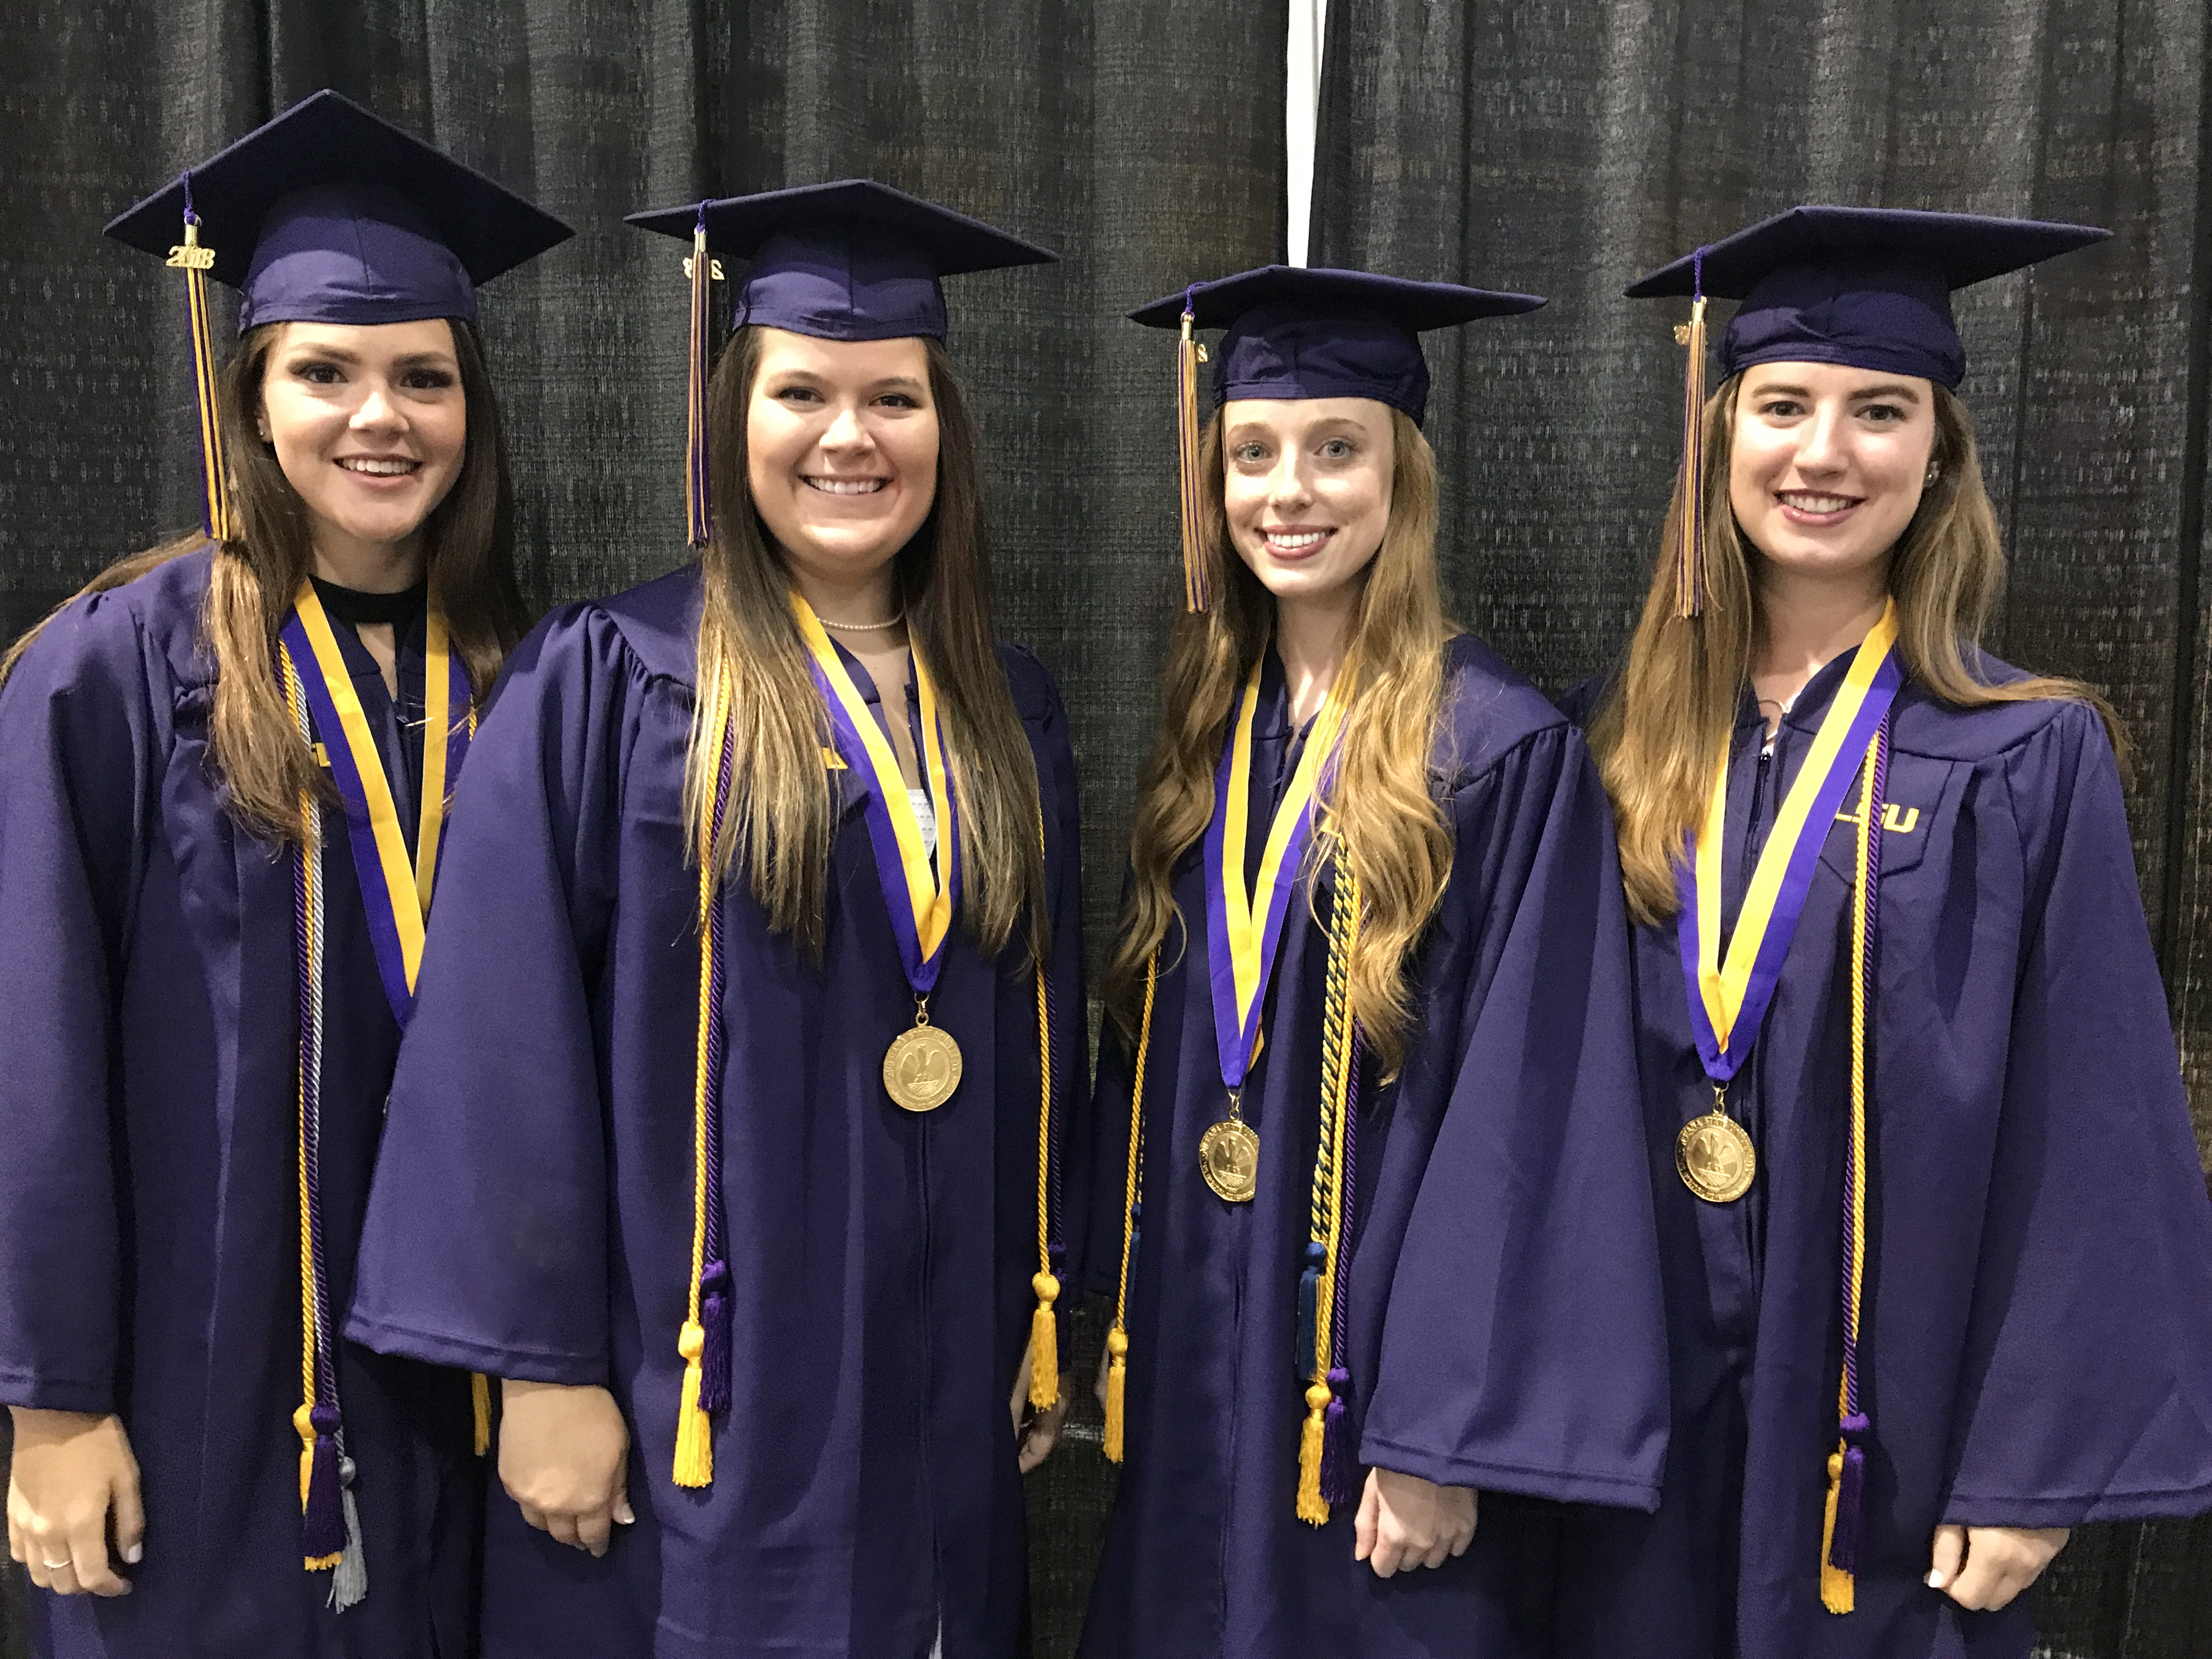 LSU College of Agriculture awards 5 University Medals